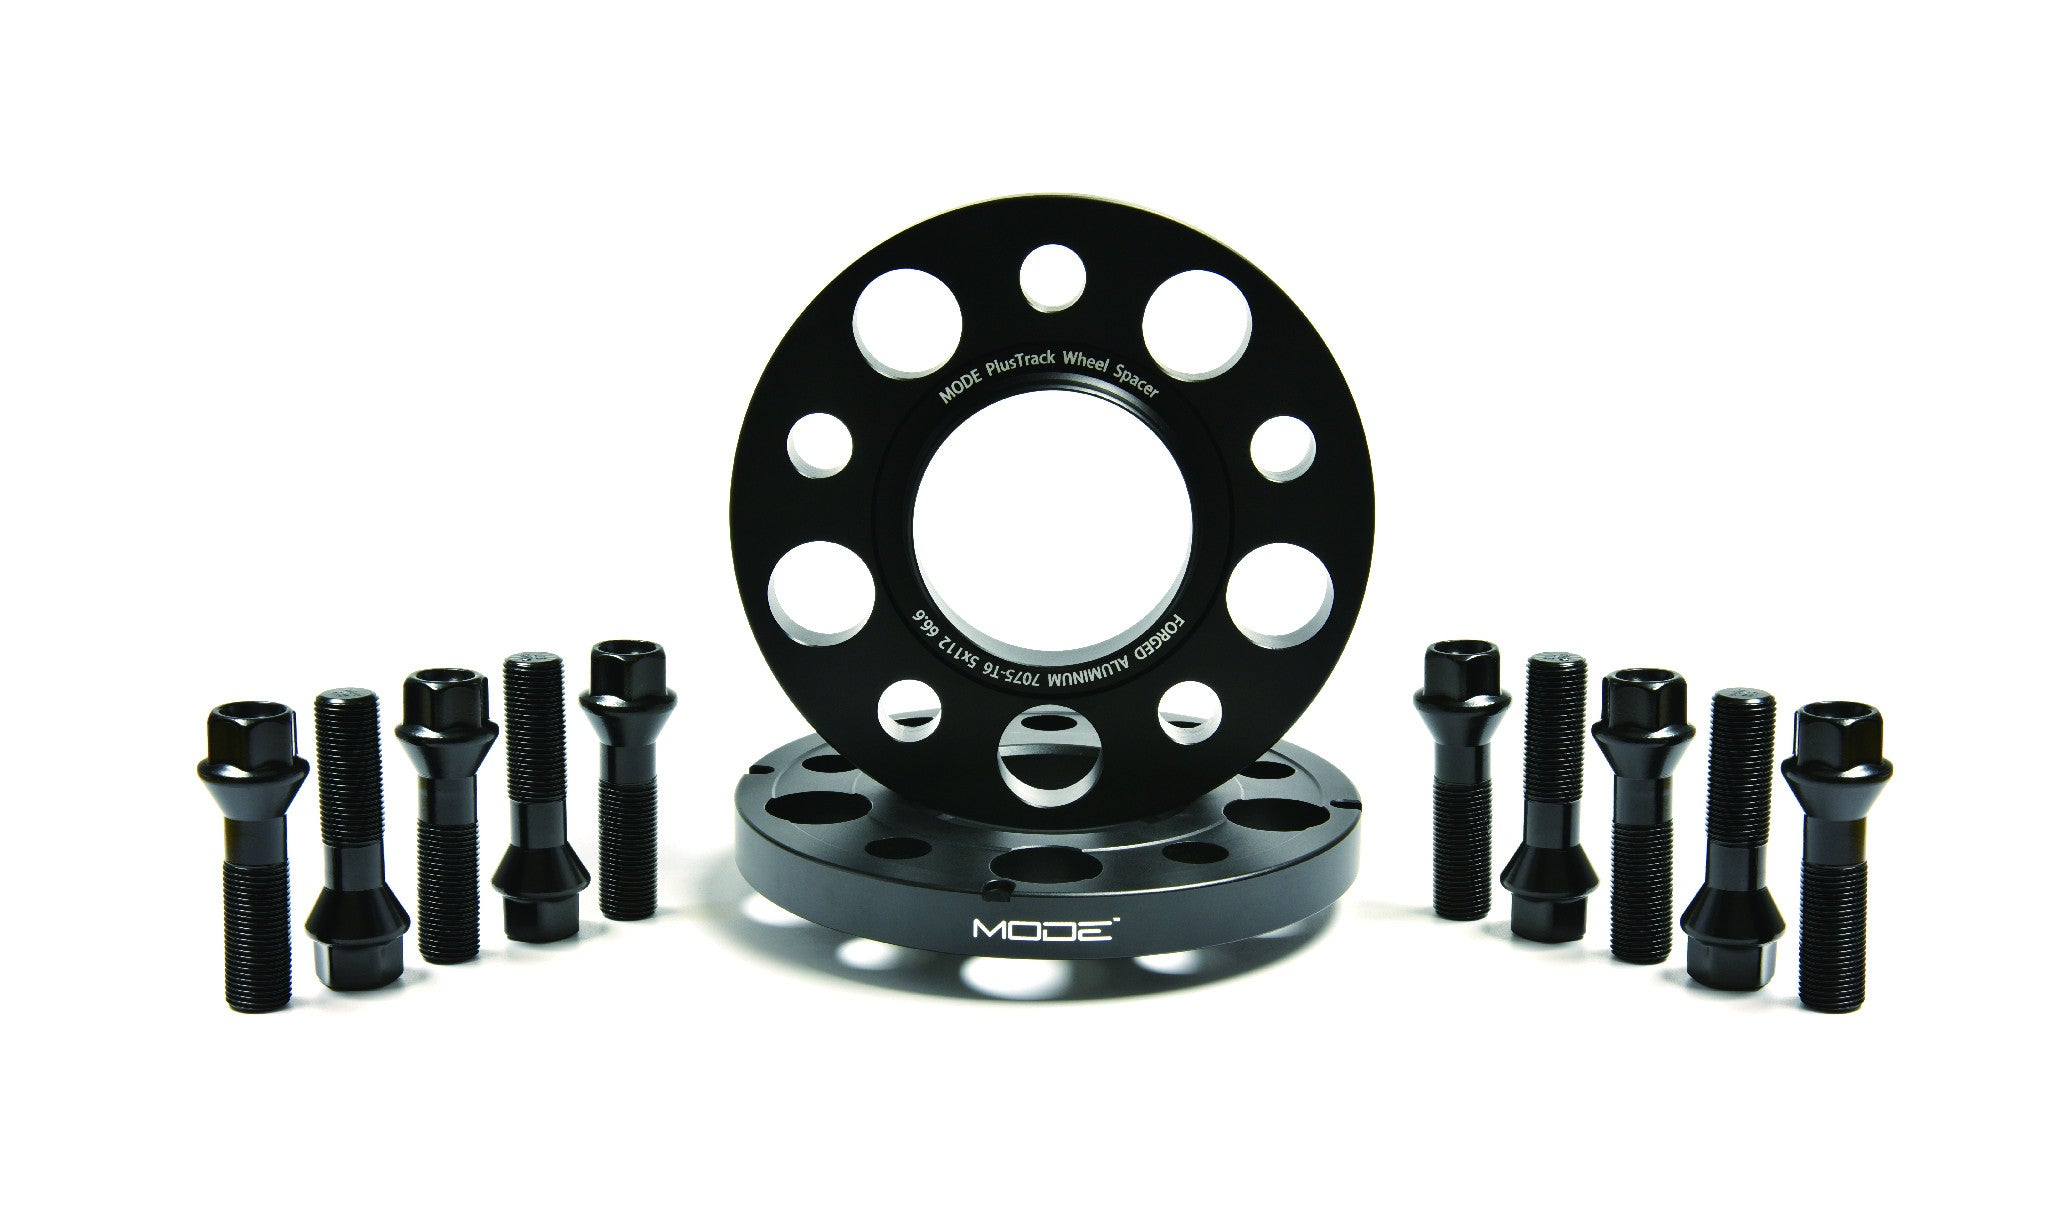 MODE PlusTrack Wheel Spacer Kit 8mm Bentley